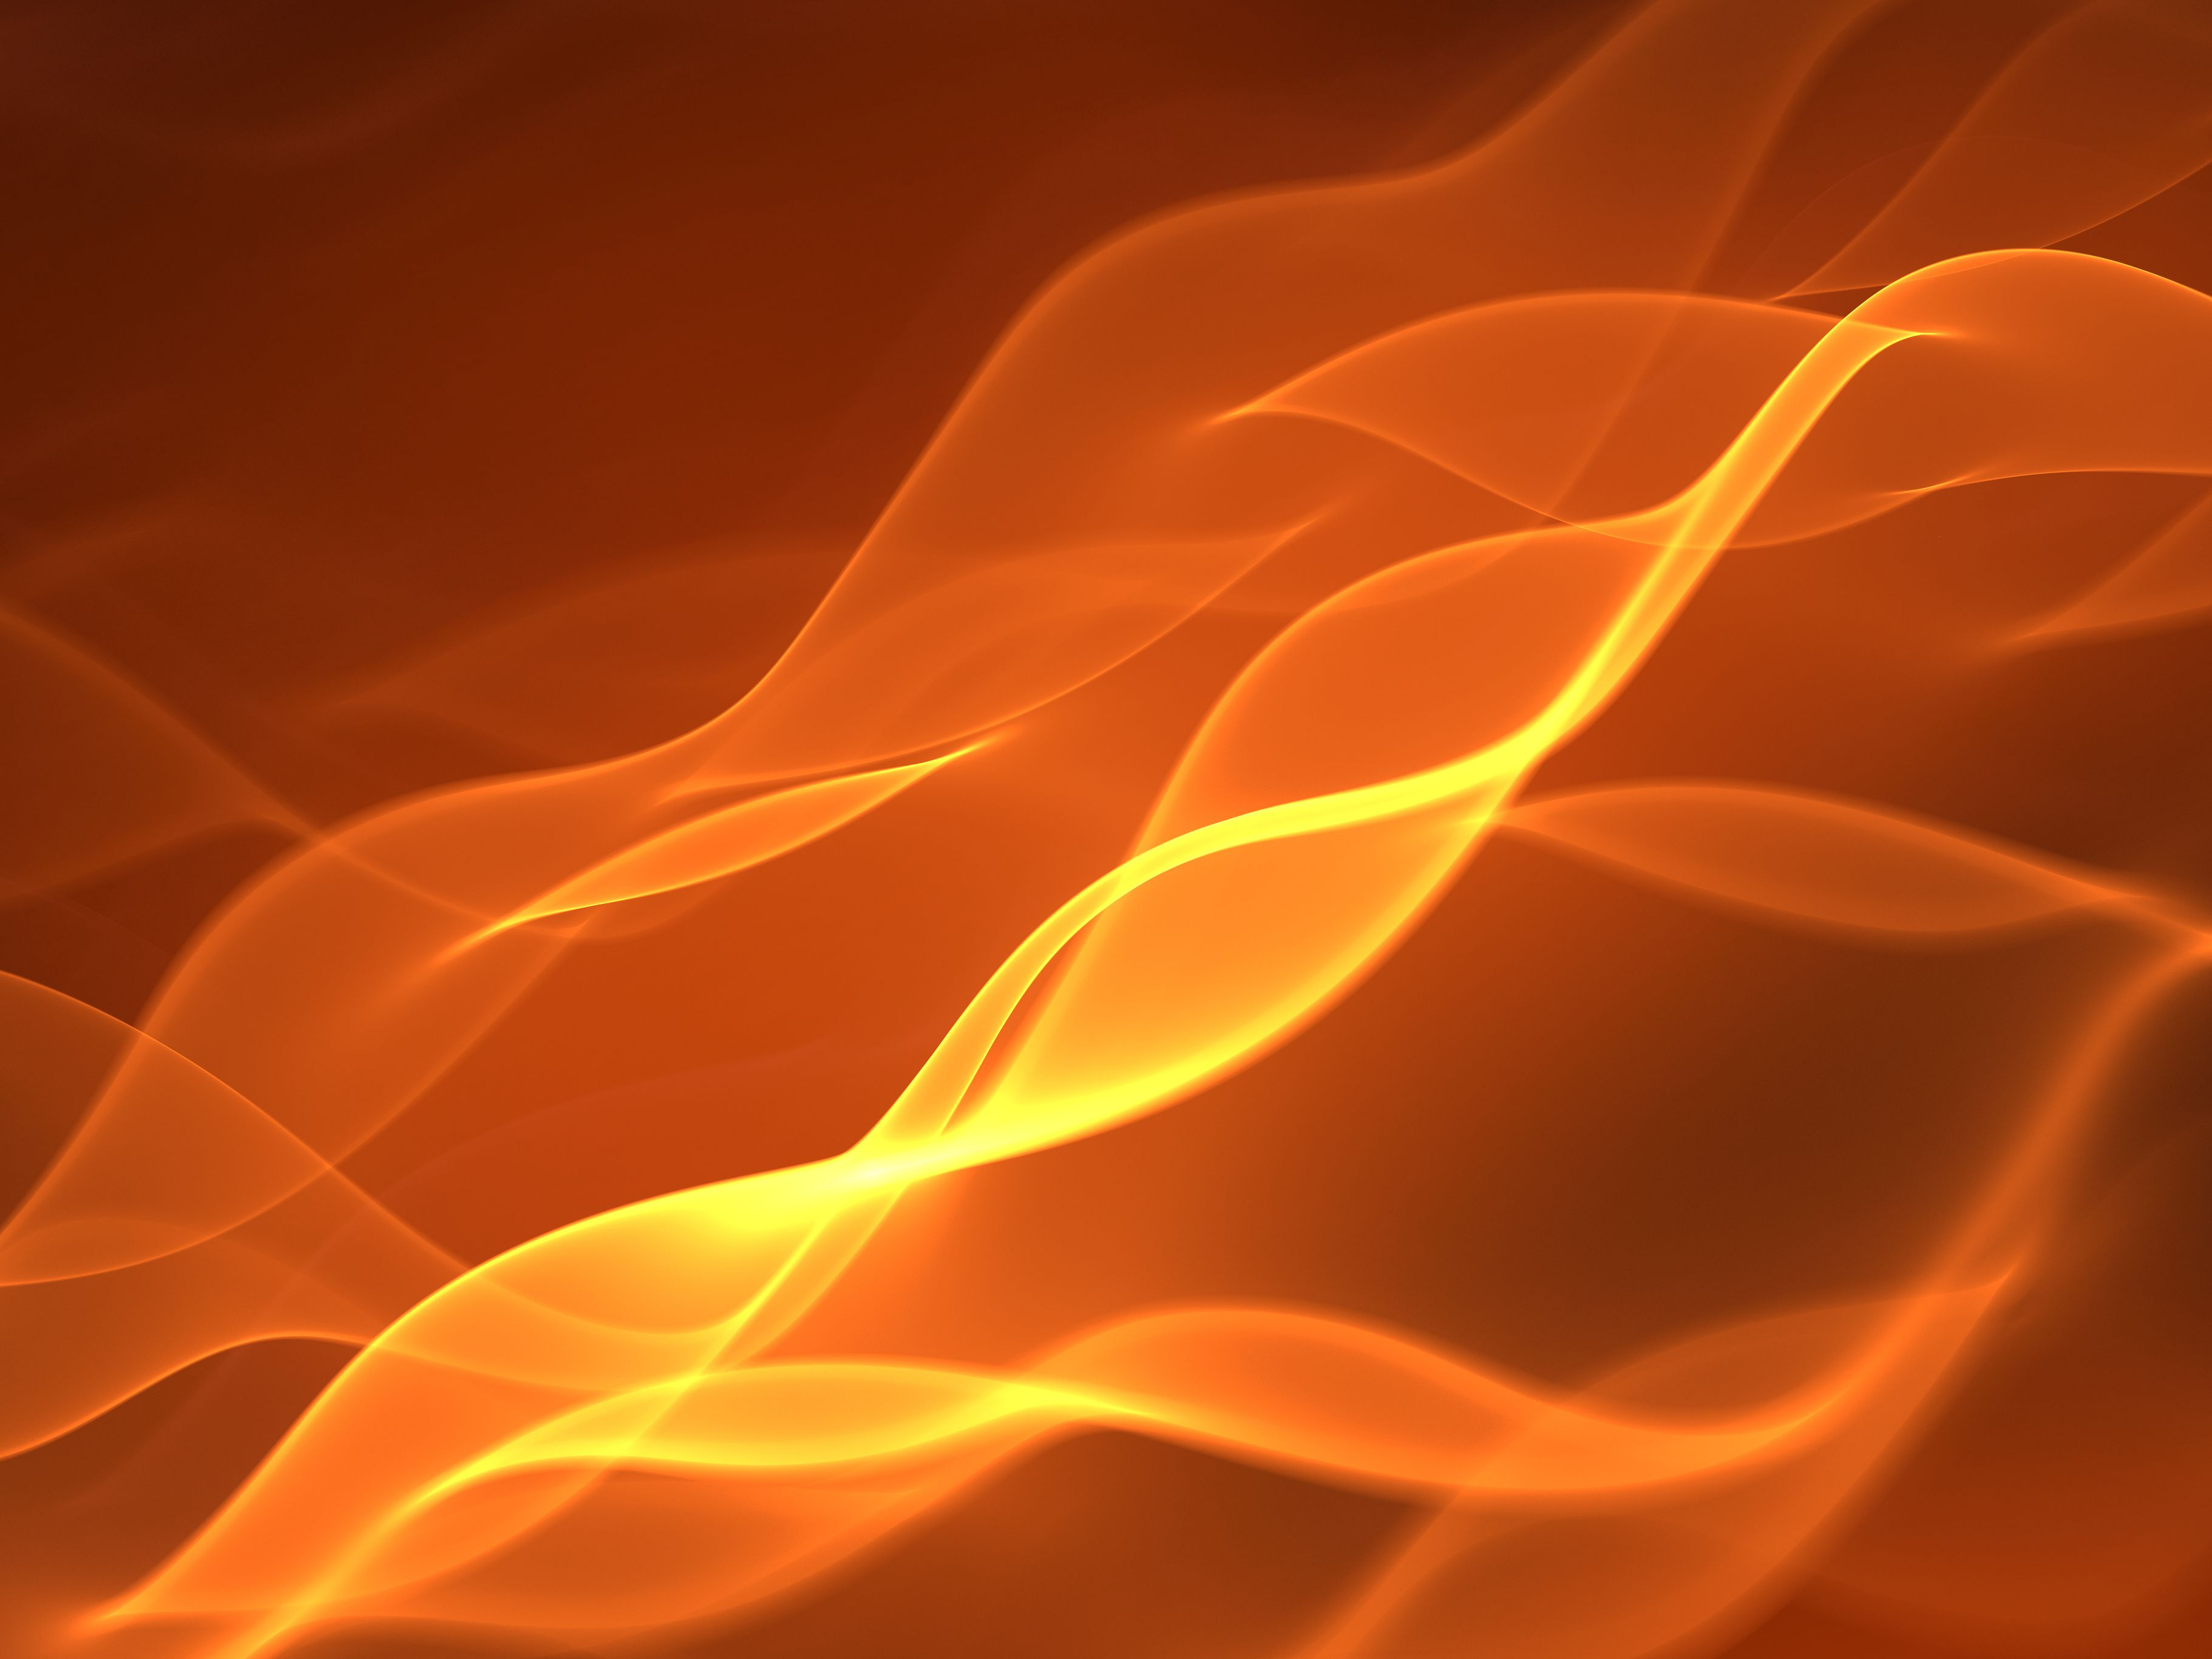 How To Draw Fire And Flames